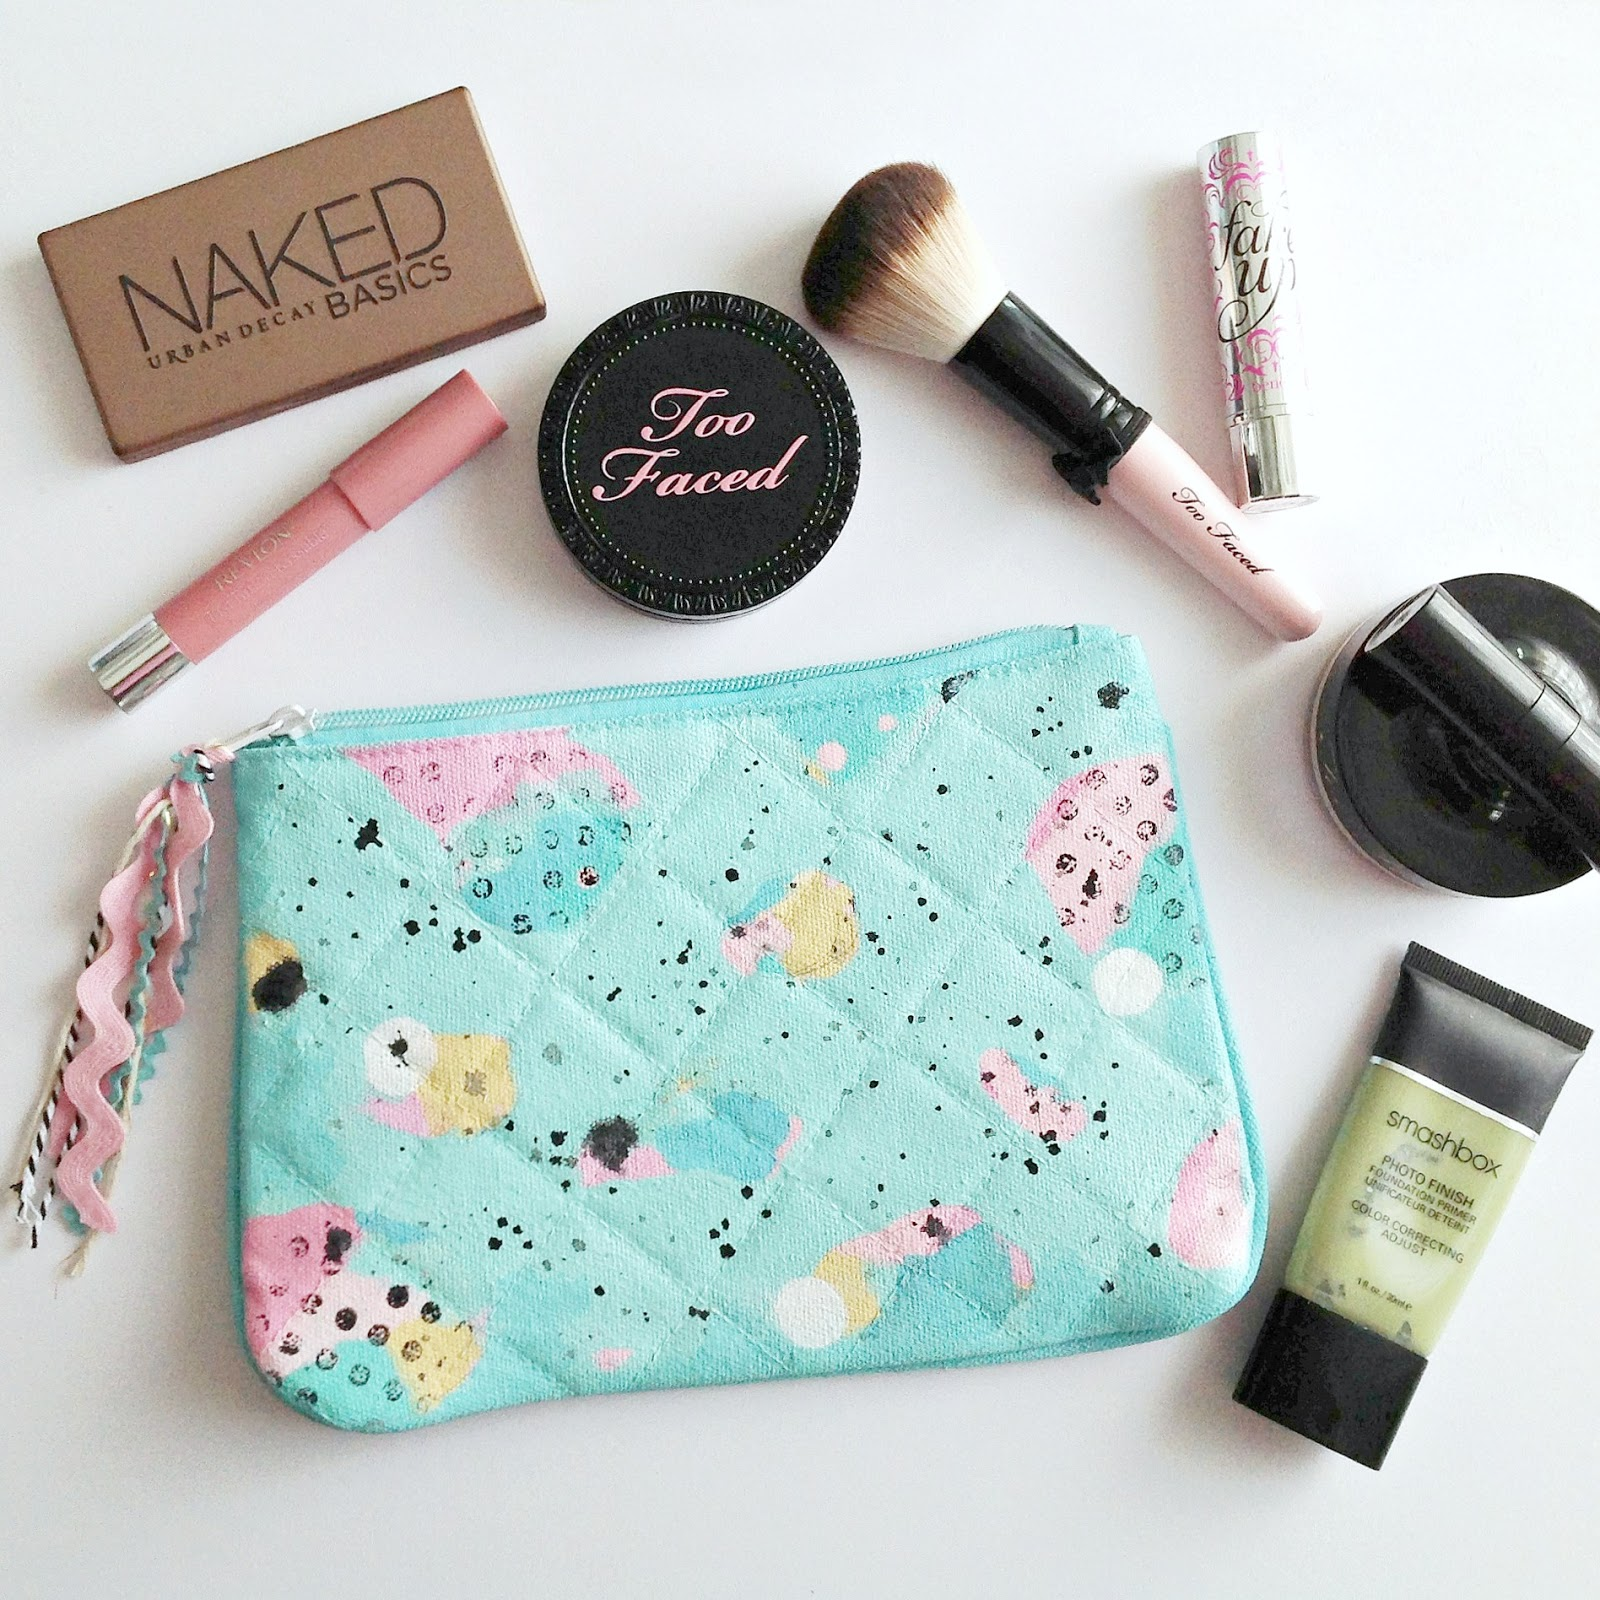 Makeup Bags Calling all makeup lovers and beginners, find super cute makeup bags at Forever 21 to carry all your must-haves. Browse from graphic to glittered styles & more.